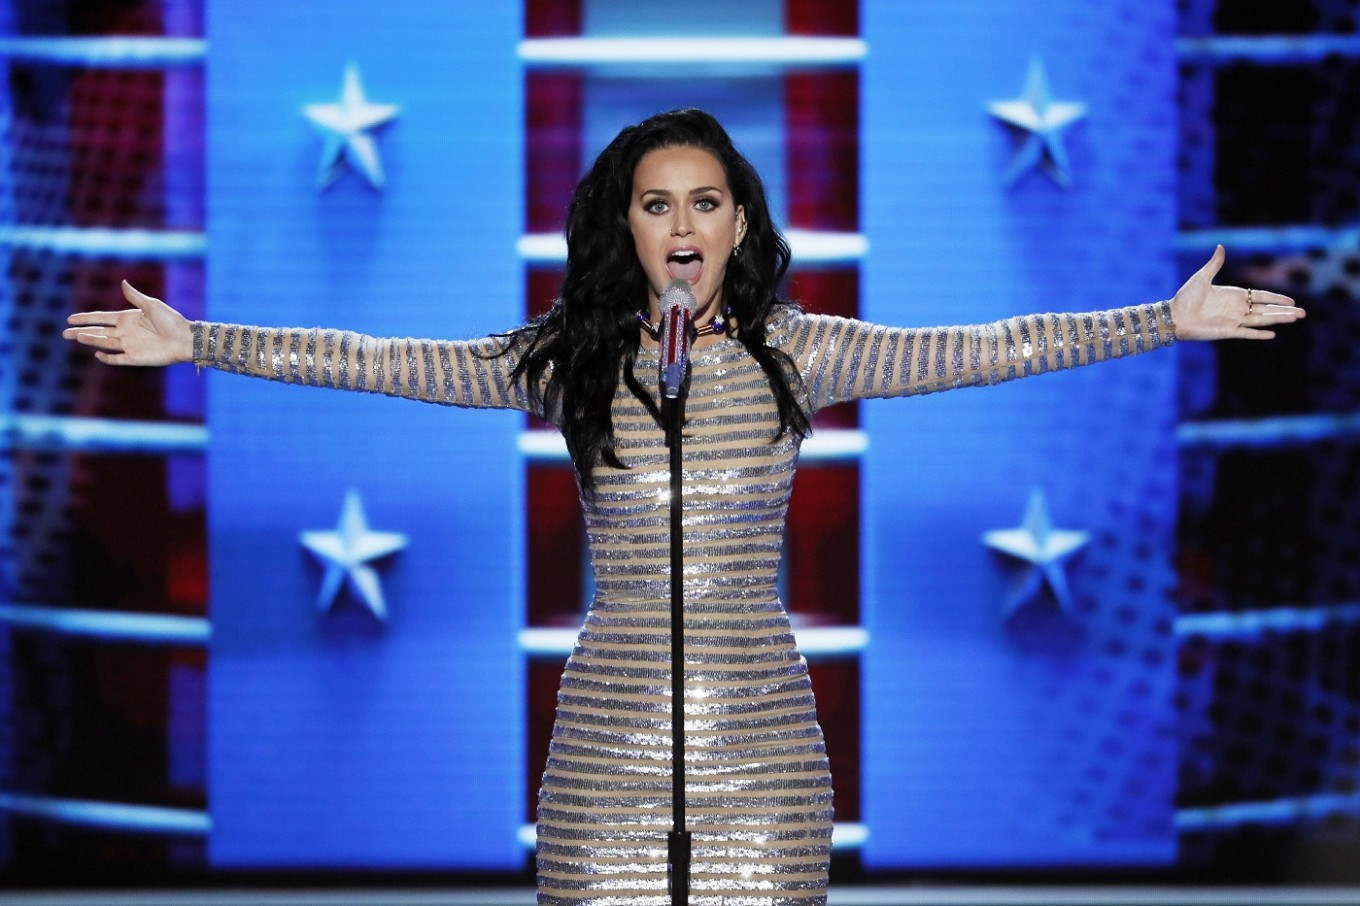 Katy Perry belts 'Rise' and 'Roar' at Democratic convention